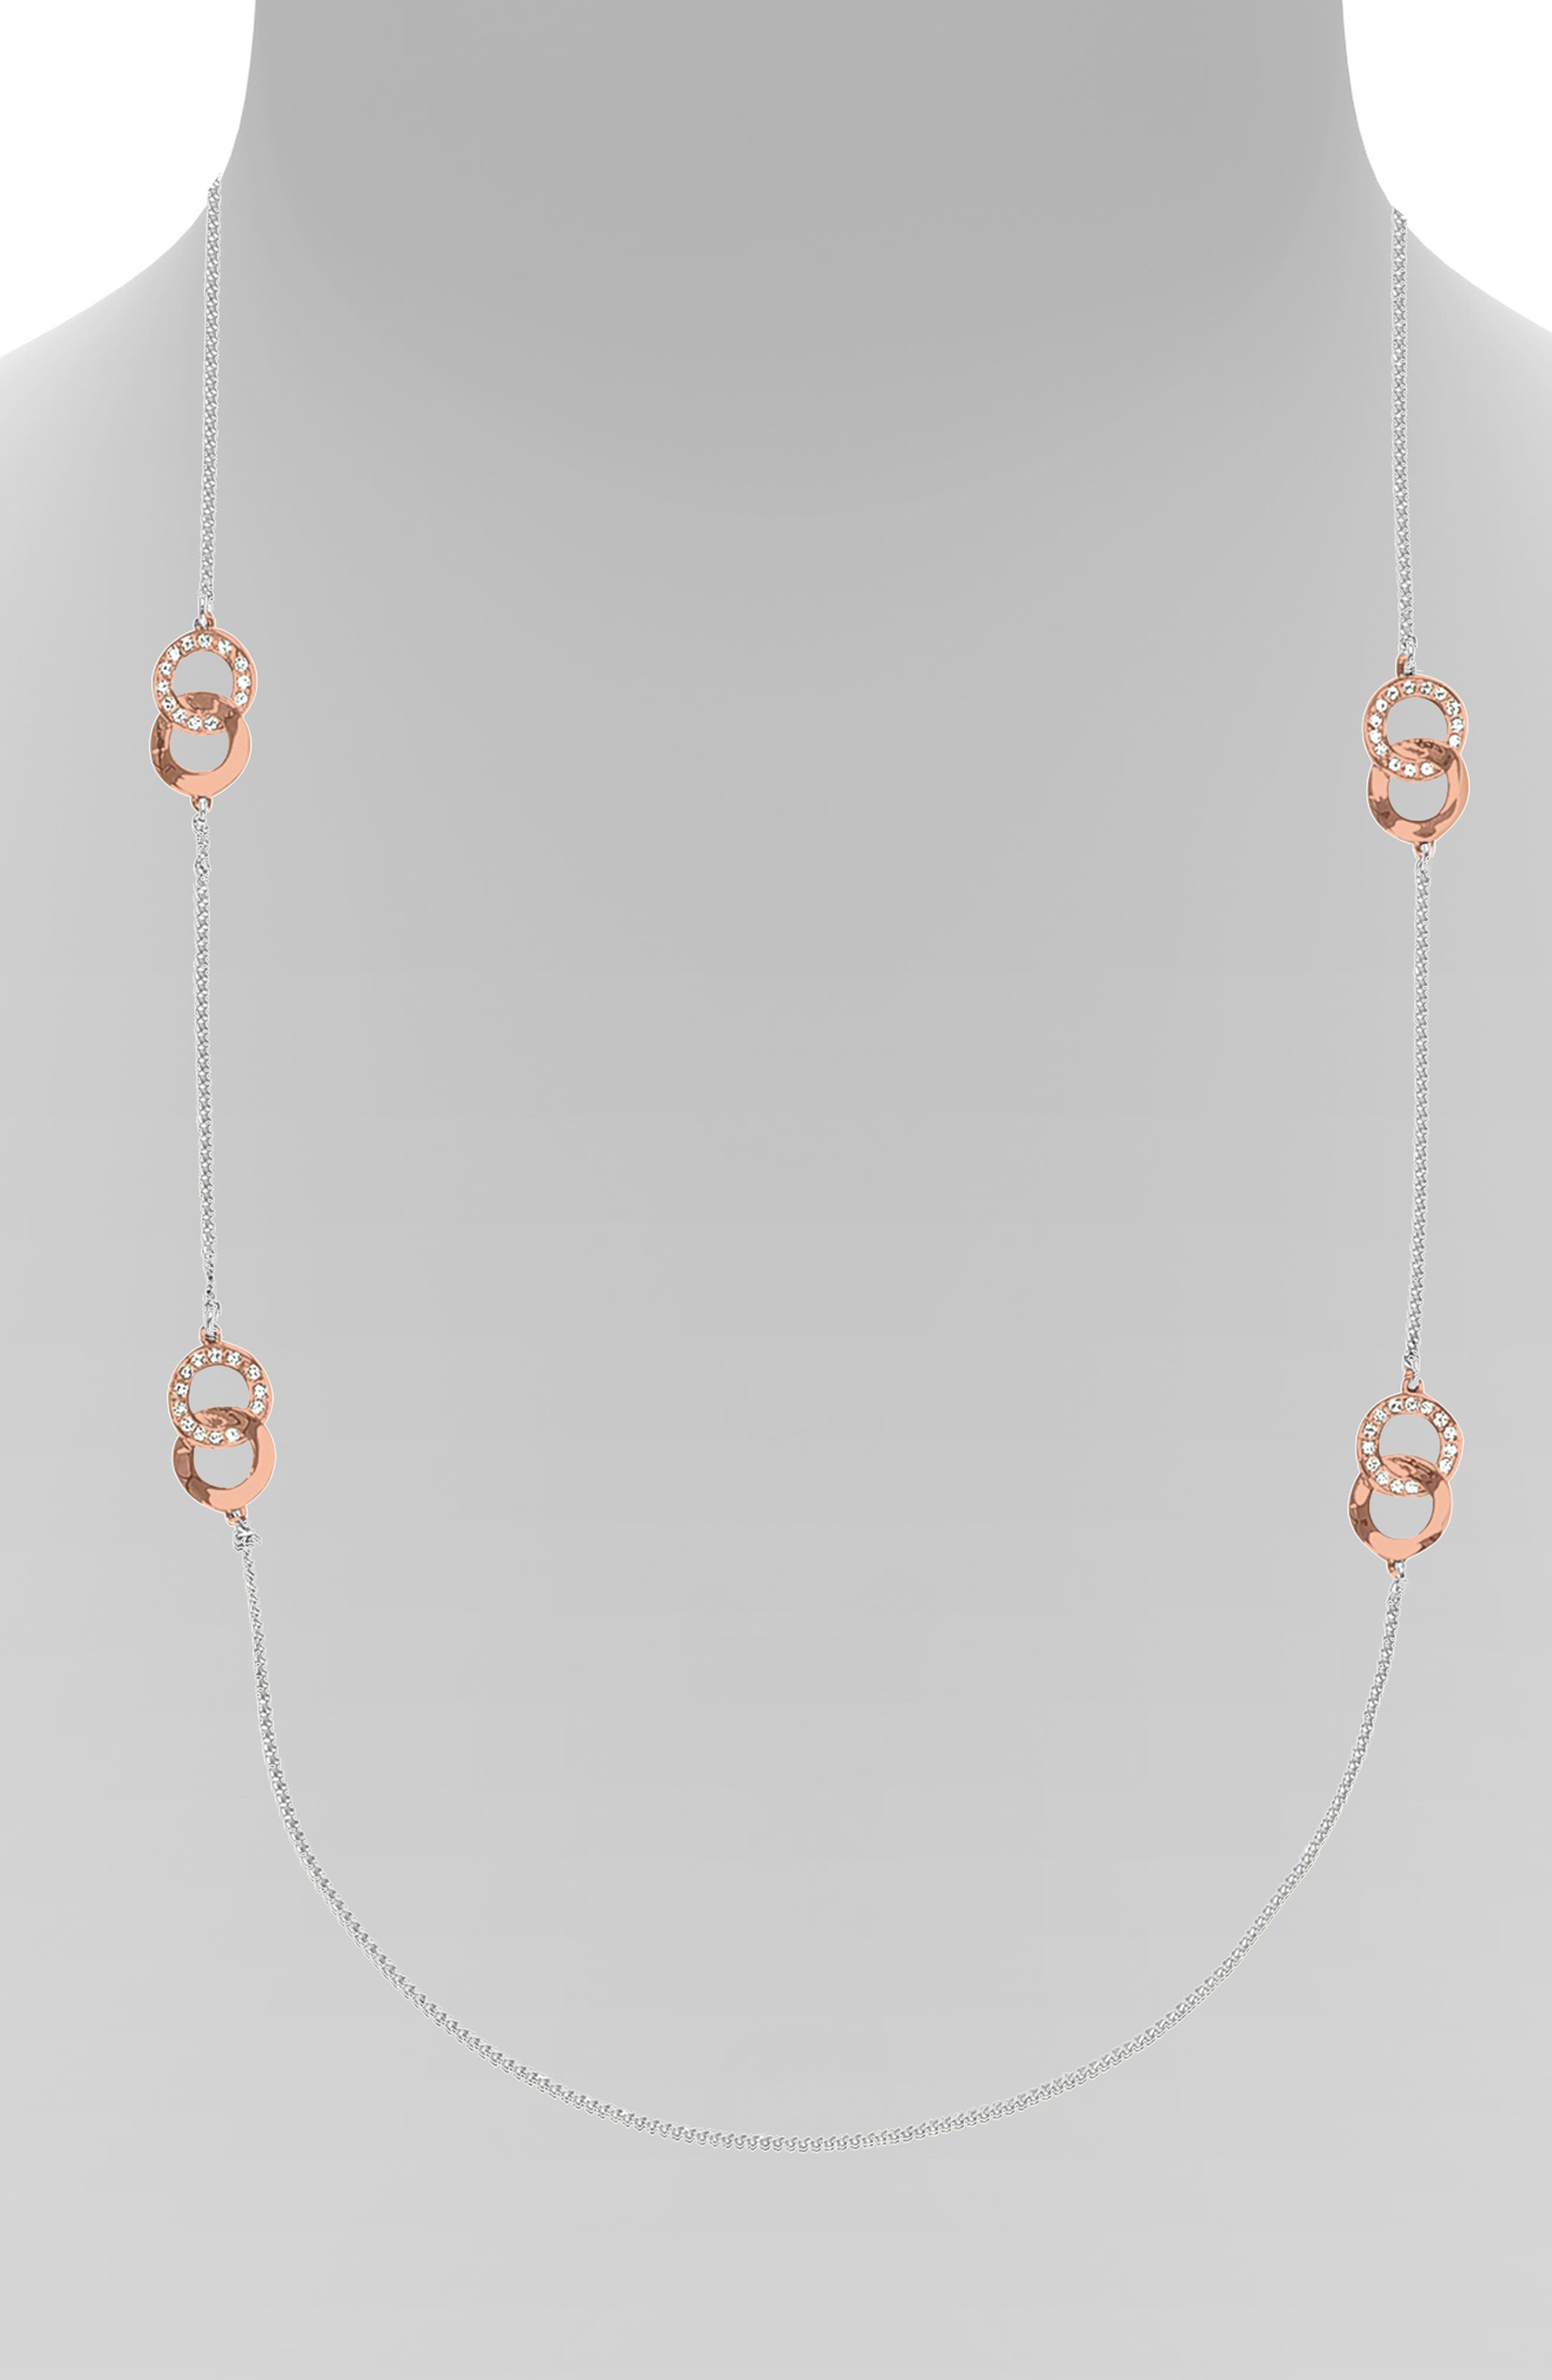 ADORÉE Interlocking Ring Long Station Necklace in Silver/ Rose Gold